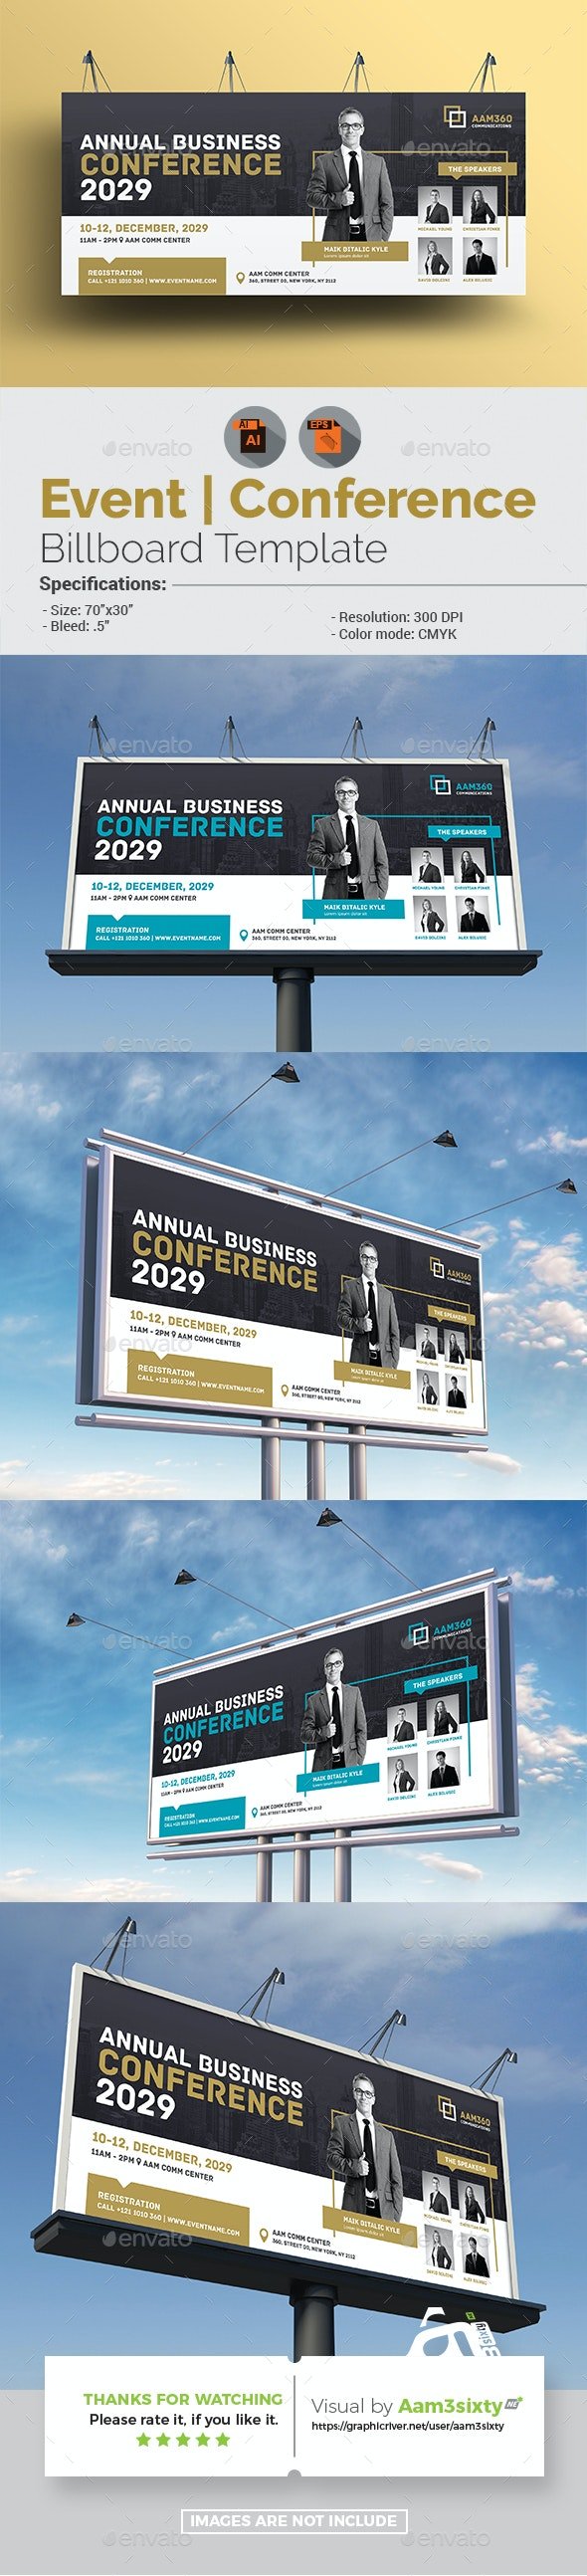 Event/Conference Billboard Template - Signage Print Templates